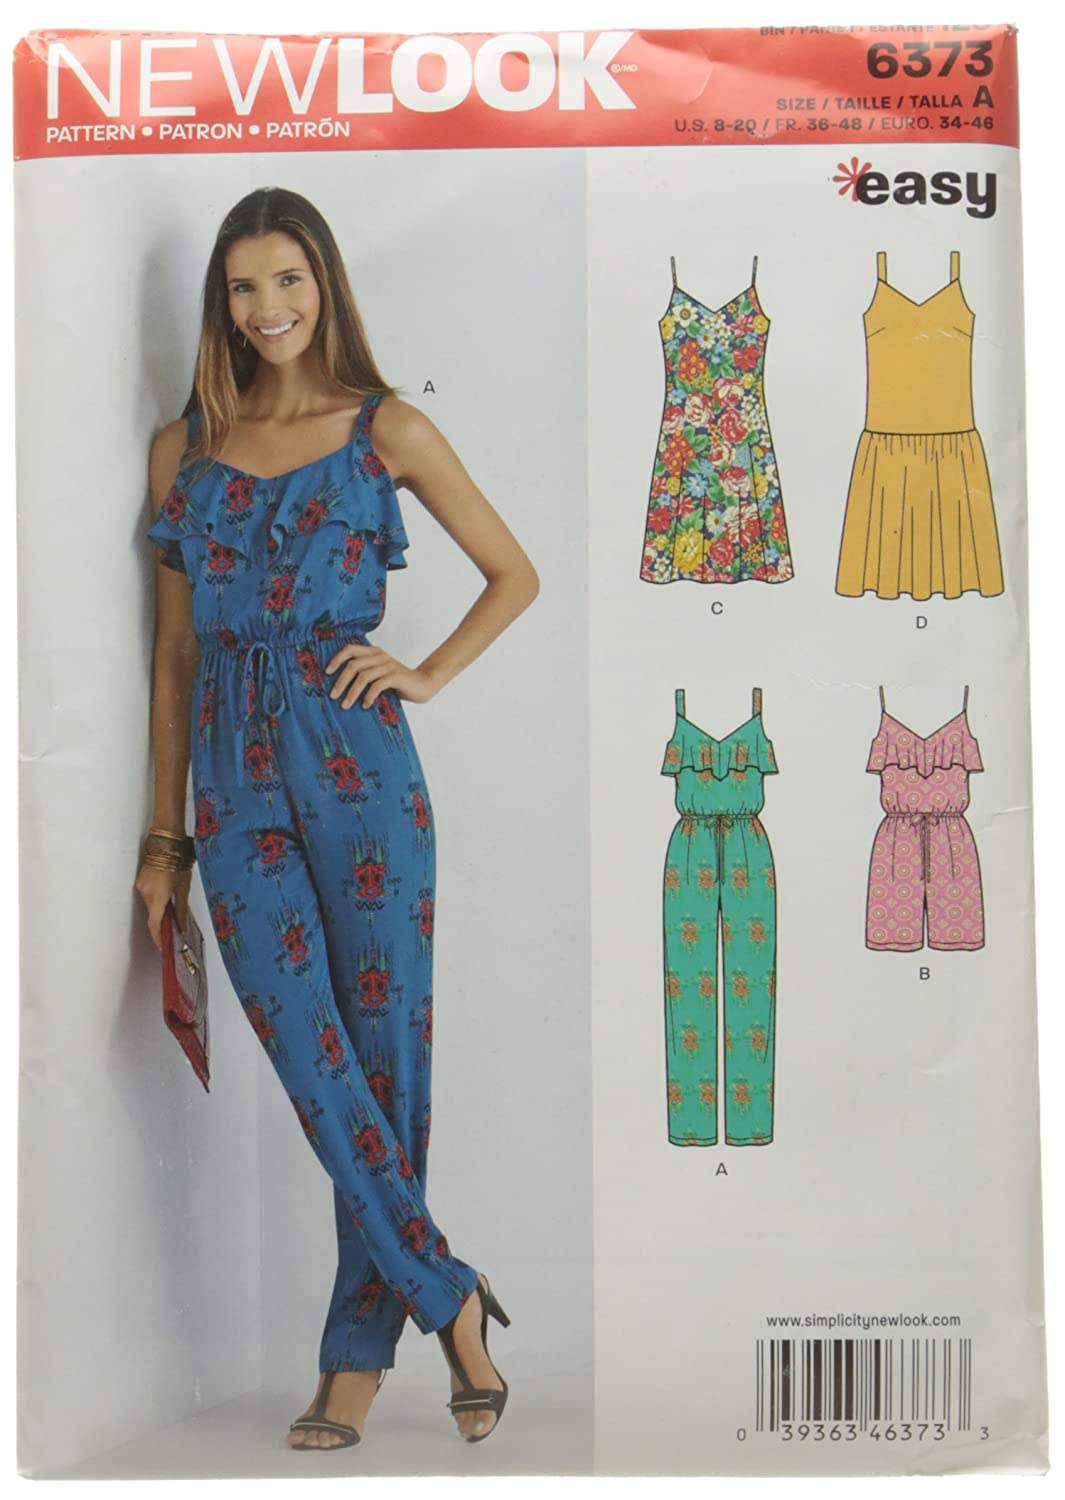 Size A New Look 6373 Misses Jumpsuit or Romper and Dresses Sewing Kit 8-10-12-14-16-18-20